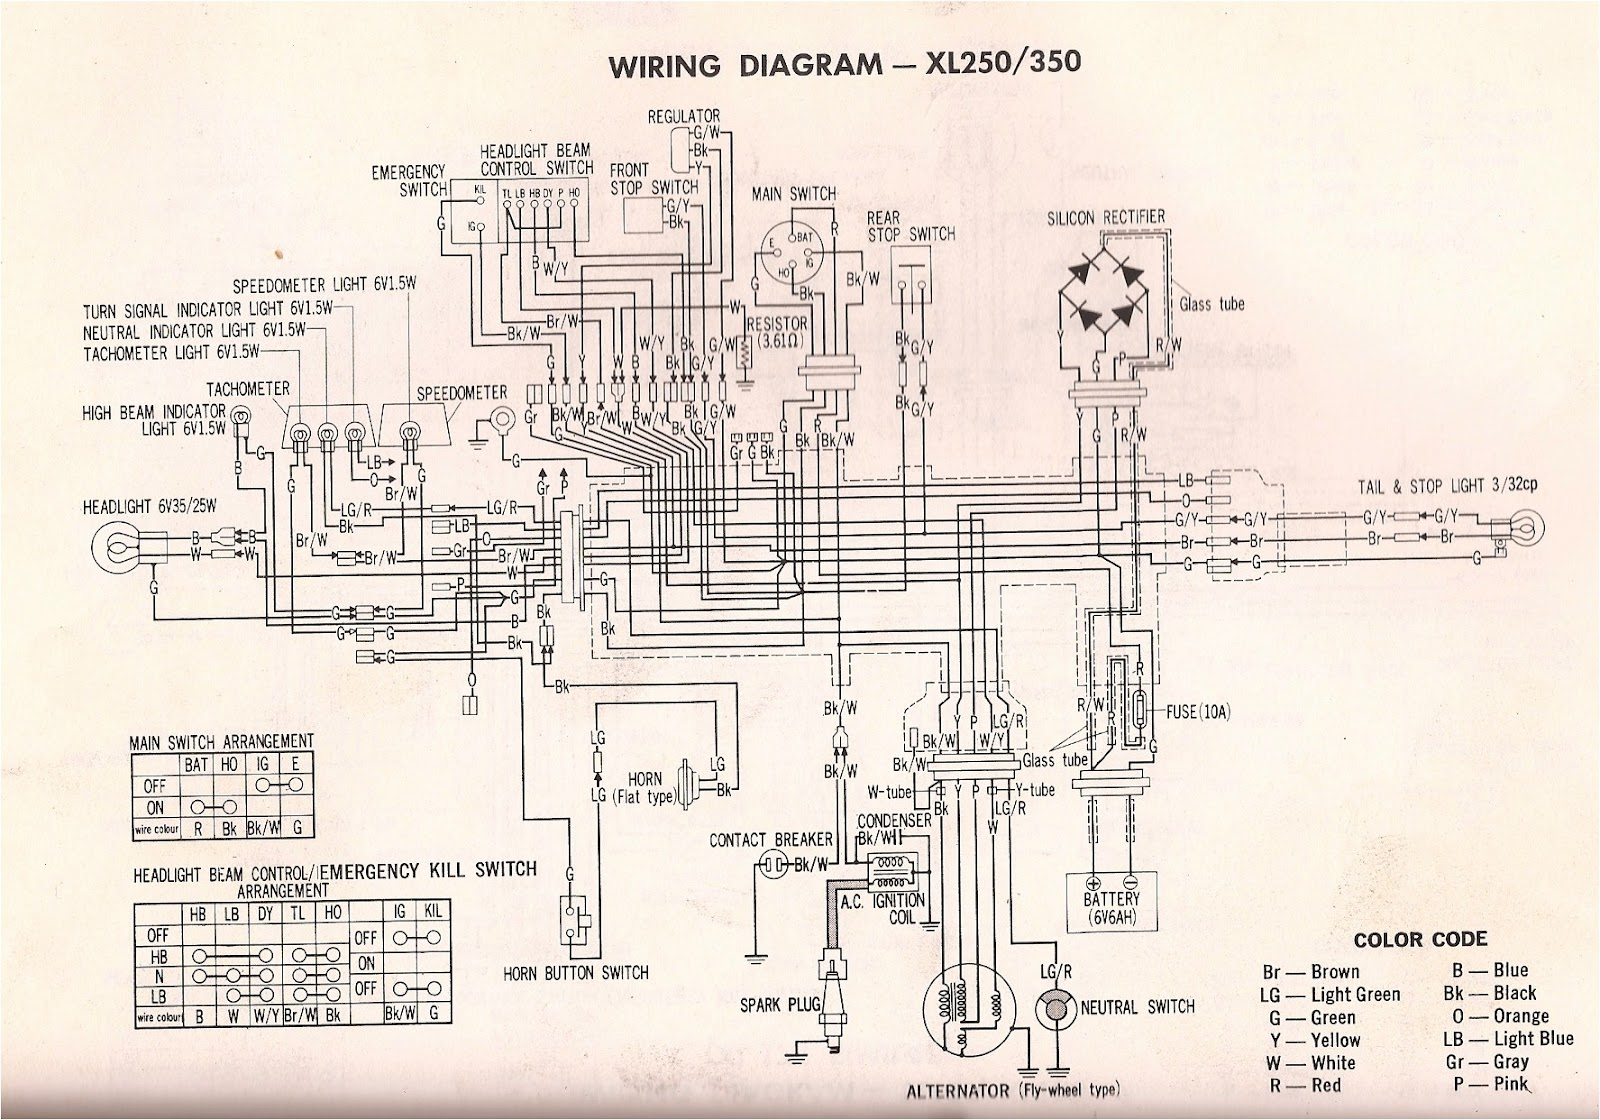 1965 honda cb160 wiring diagram 1965 discover your wiring r4l xl350 wiring diagram and xl250